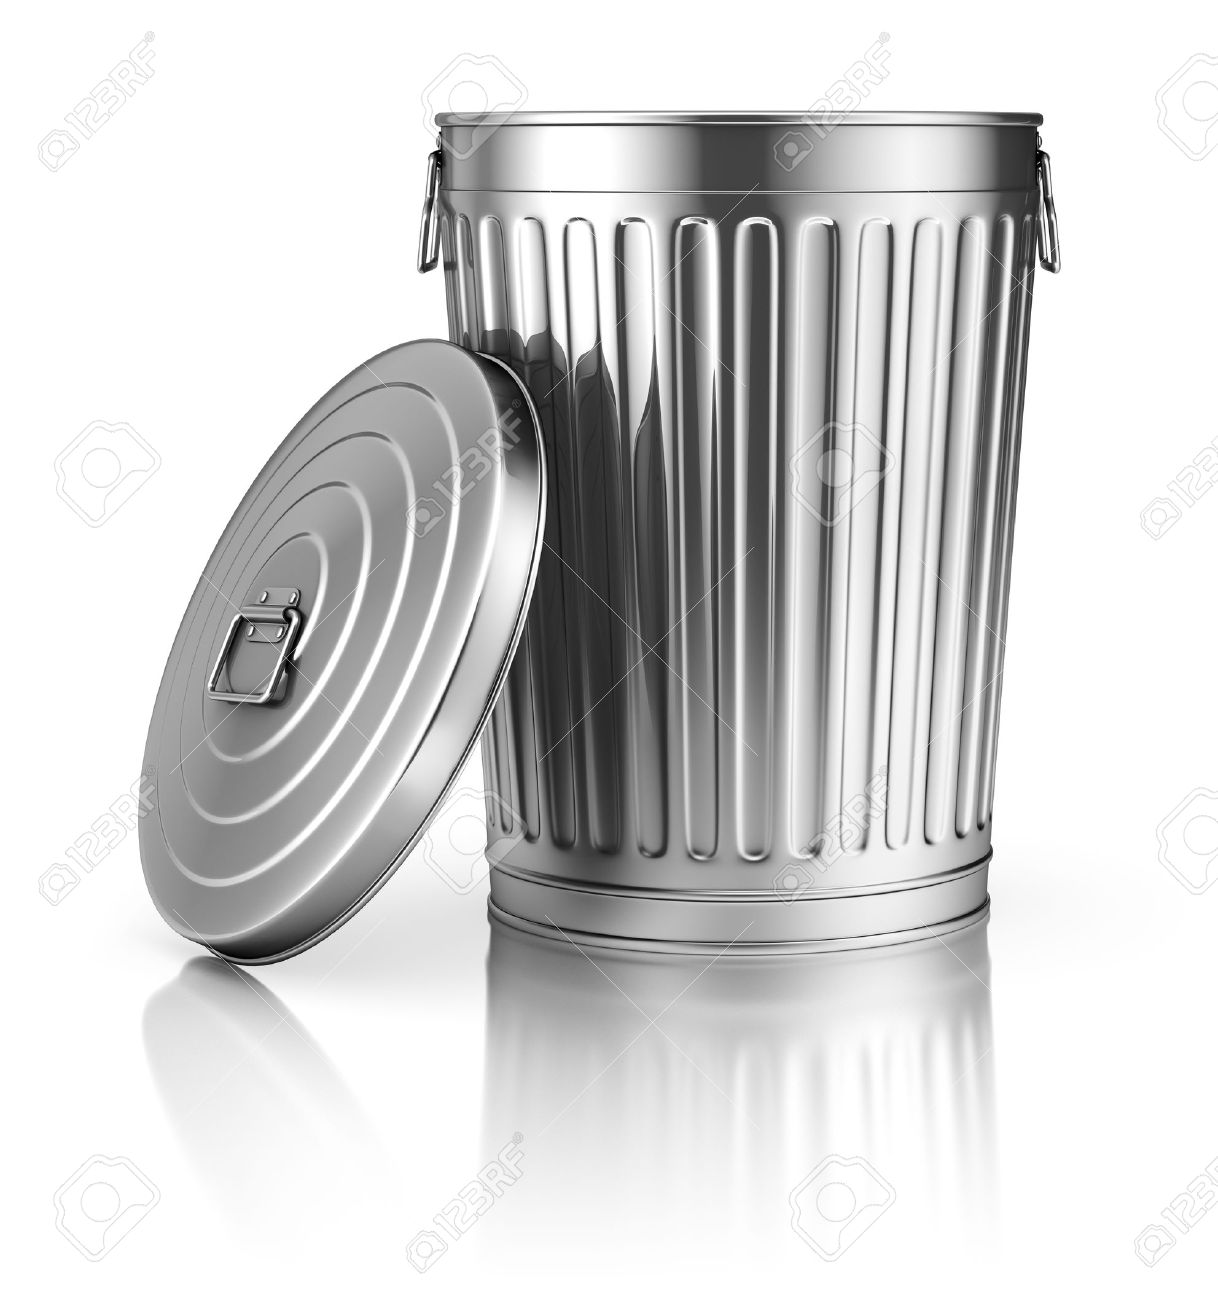 2,634 Silver Lid Stock Vector Illustration And Royalty Free Silver ...